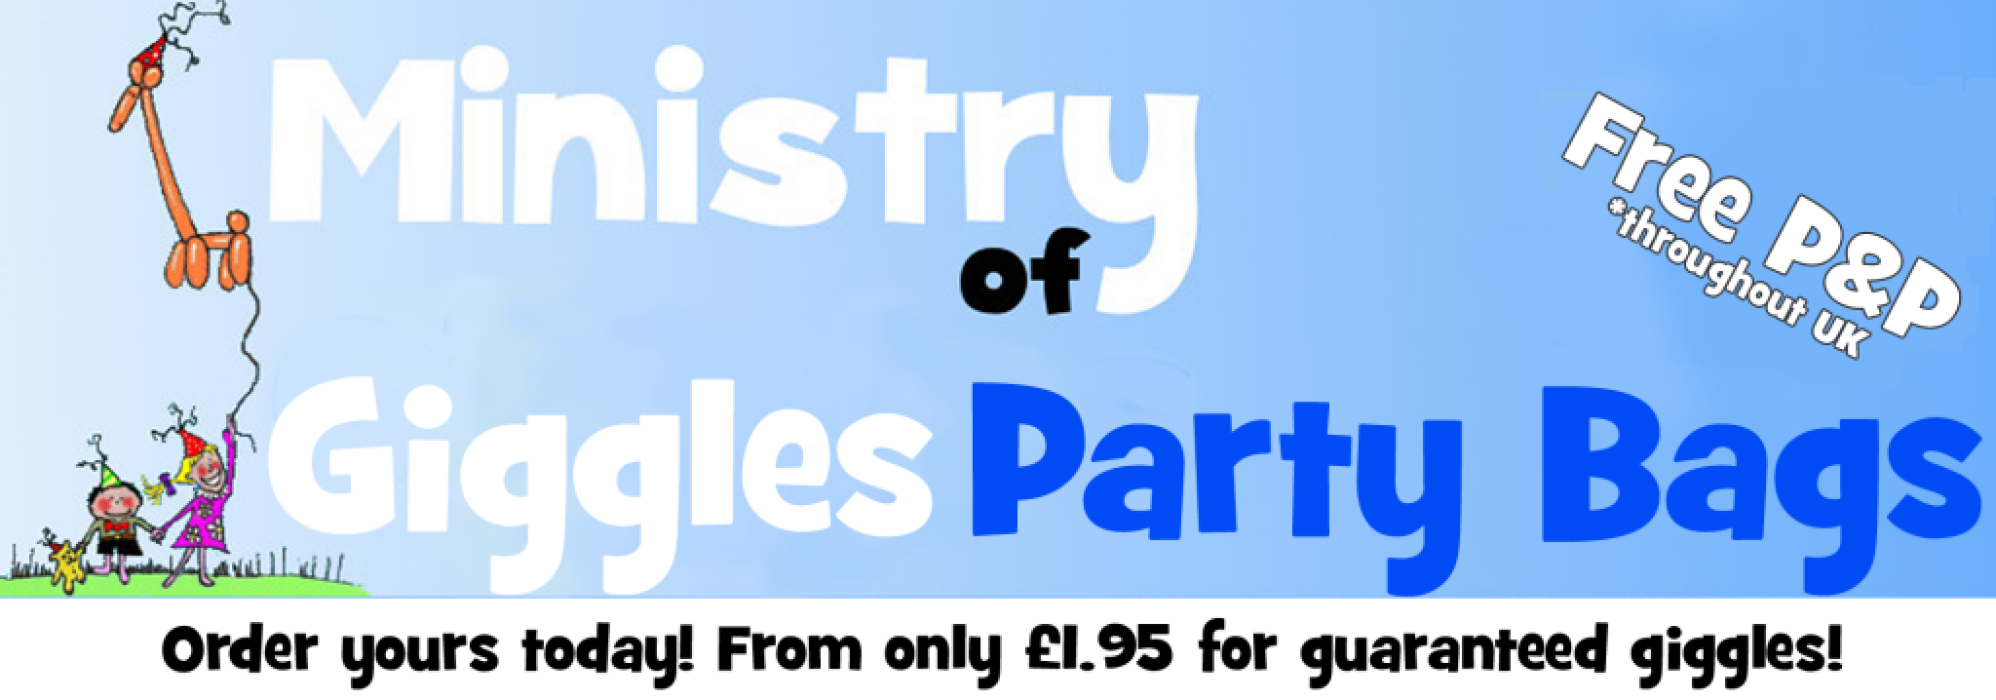 Ministry of Giggles Party Bags